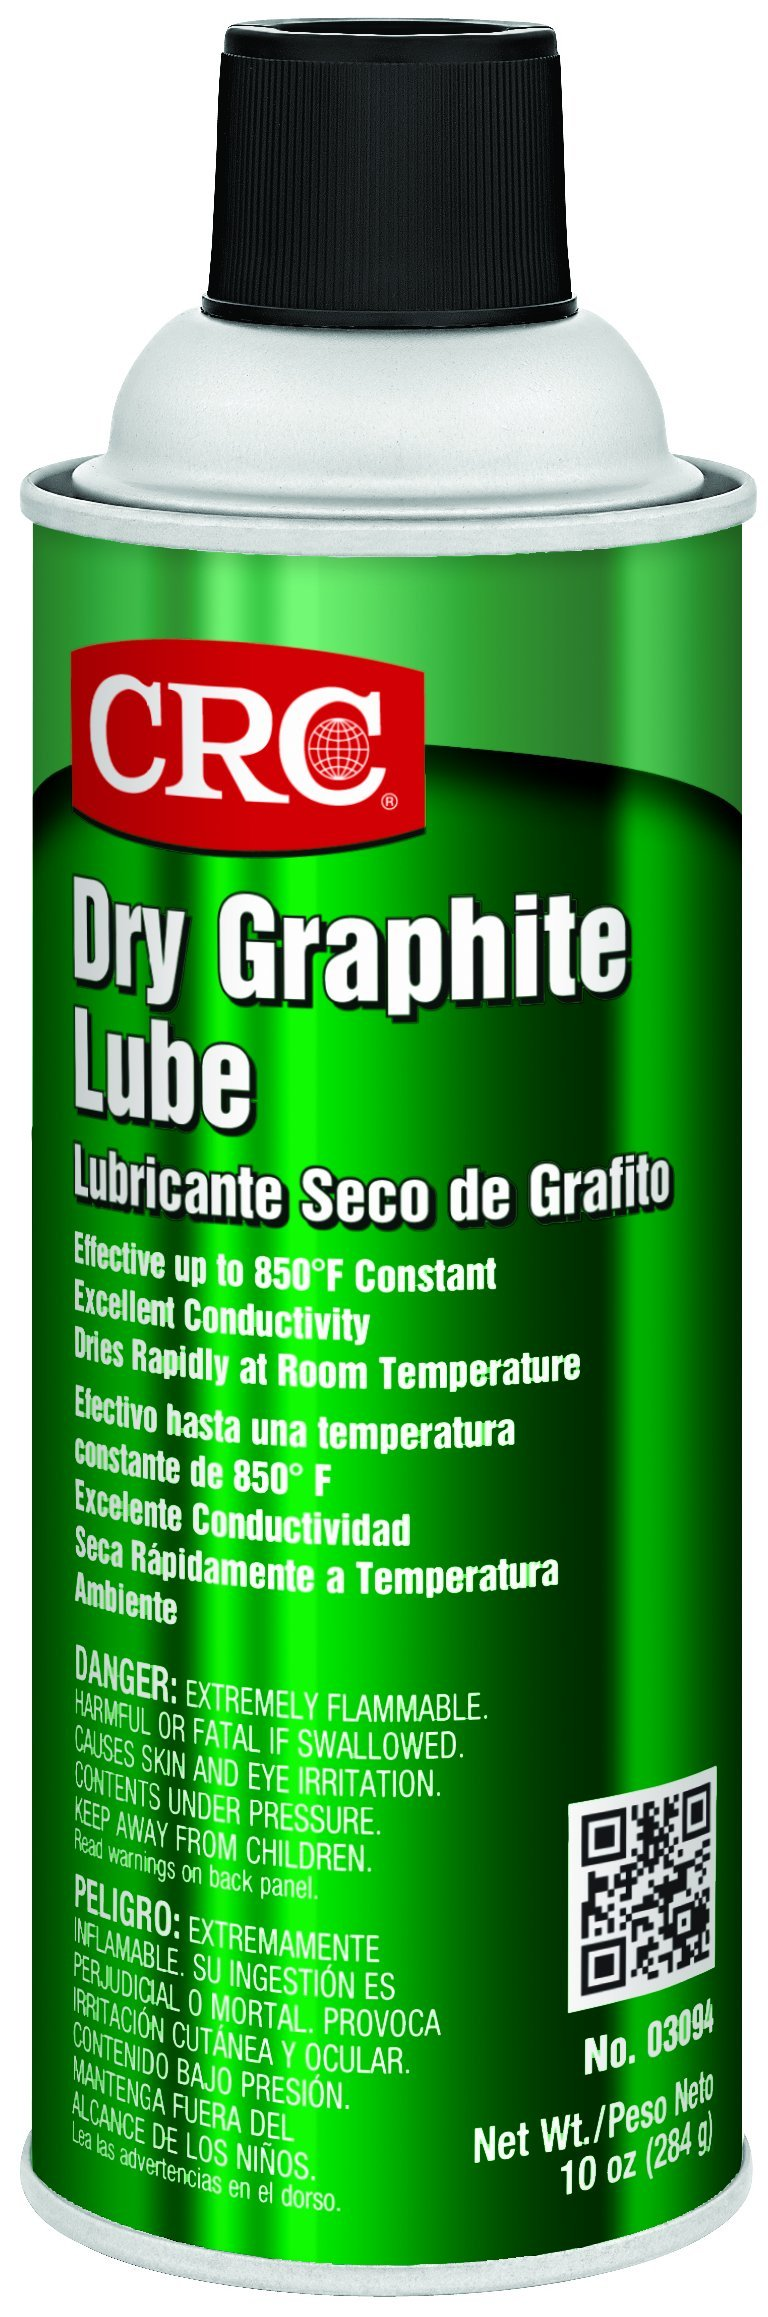 CRC Dry Graphite Lube, 10 oz Aerosol Can, Black product image